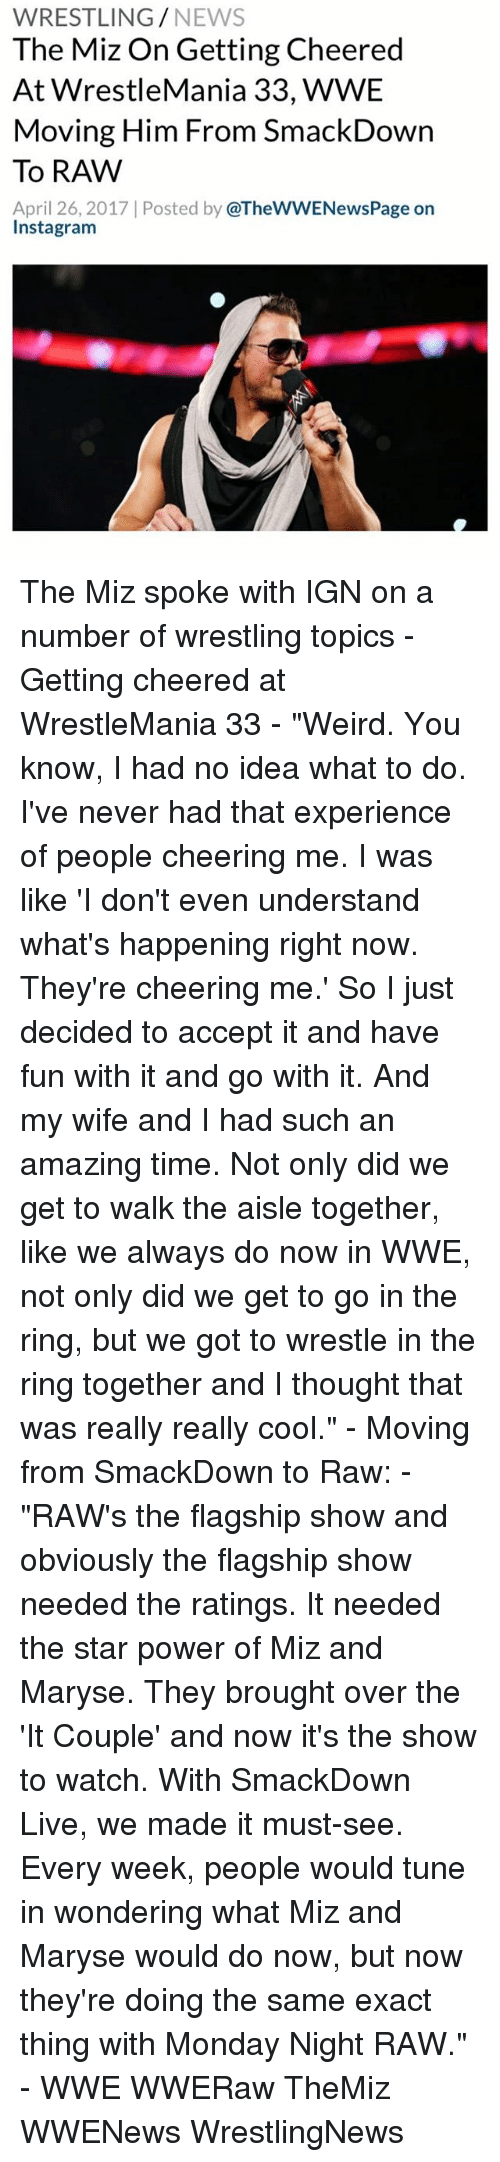 "raw wwe: WRESTLING  NEWS  The Miz On Getting Cheered  At WrestleMania 33, WWE  Moving Him From SmackDown  To RAW  April 26, 2017 Posted by  @TheWWENewsPage on  Instagram The Miz spoke with IGN on a number of wrestling topics - Getting cheered at WrestleMania 33 - ""Weird. You know, I had no idea what to do. I've never had that experience of people cheering me. I was like 'I don't even understand what's happening right now. They're cheering me.' So I just decided to accept it and have fun with it and go with it. And my wife and I had such an amazing time. Not only did we get to walk the aisle together, like we always do now in WWE, not only did we get to go in the ring, but we got to wrestle in the ring together and I thought that was really really cool."" - Moving from SmackDown to Raw: - ""RAW's the flagship show and obviously the flagship show needed the ratings. It needed the star power of Miz and Maryse. They brought over the 'It Couple' and now it's the show to watch. With SmackDown Live, we made it must-see. Every week, people would tune in wondering what Miz and Maryse would do now, but now they're doing the same exact thing with Monday Night RAW."" - WWE WWERaw TheMiz WWENews WrestlingNews"